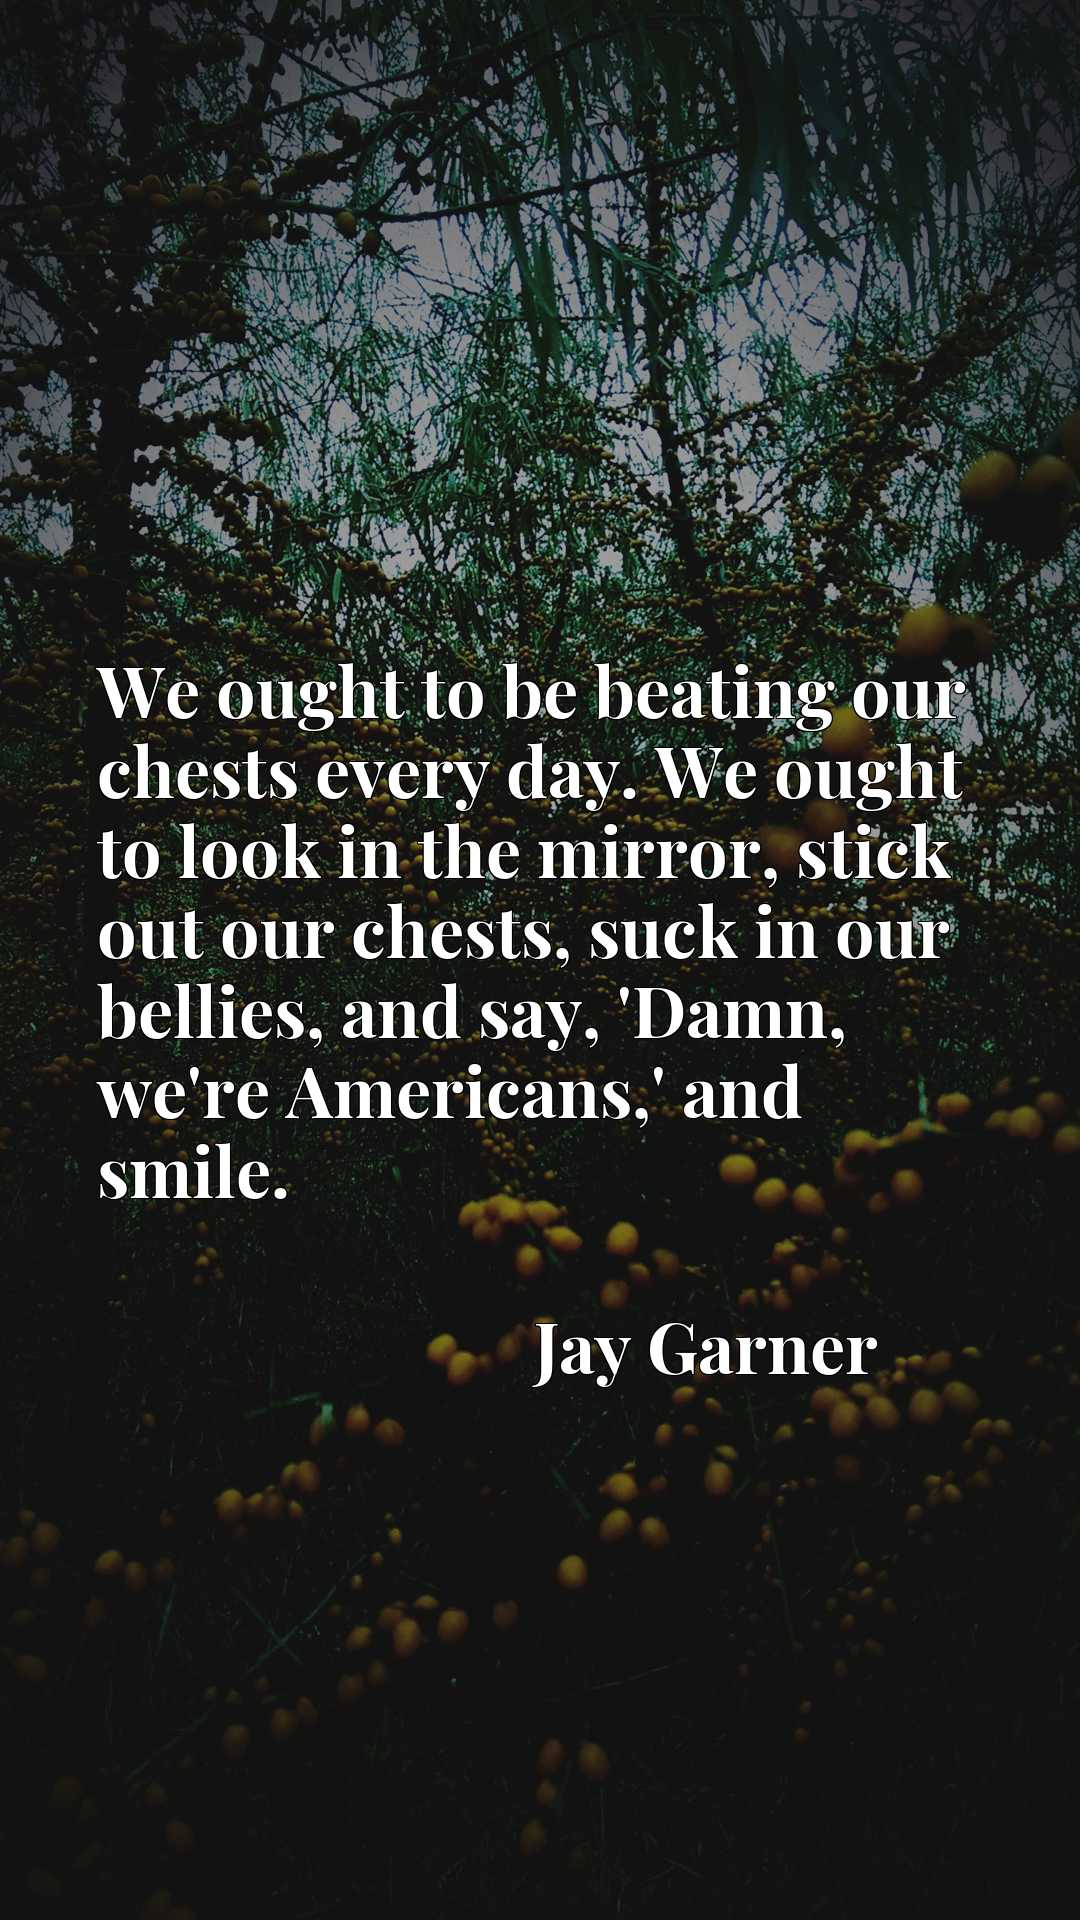 We ought to be beating our chests every day. We ought to look in the mirror, stick out our chests, suck in our bellies, and say, 'Damn, we're Americans,' and smile.